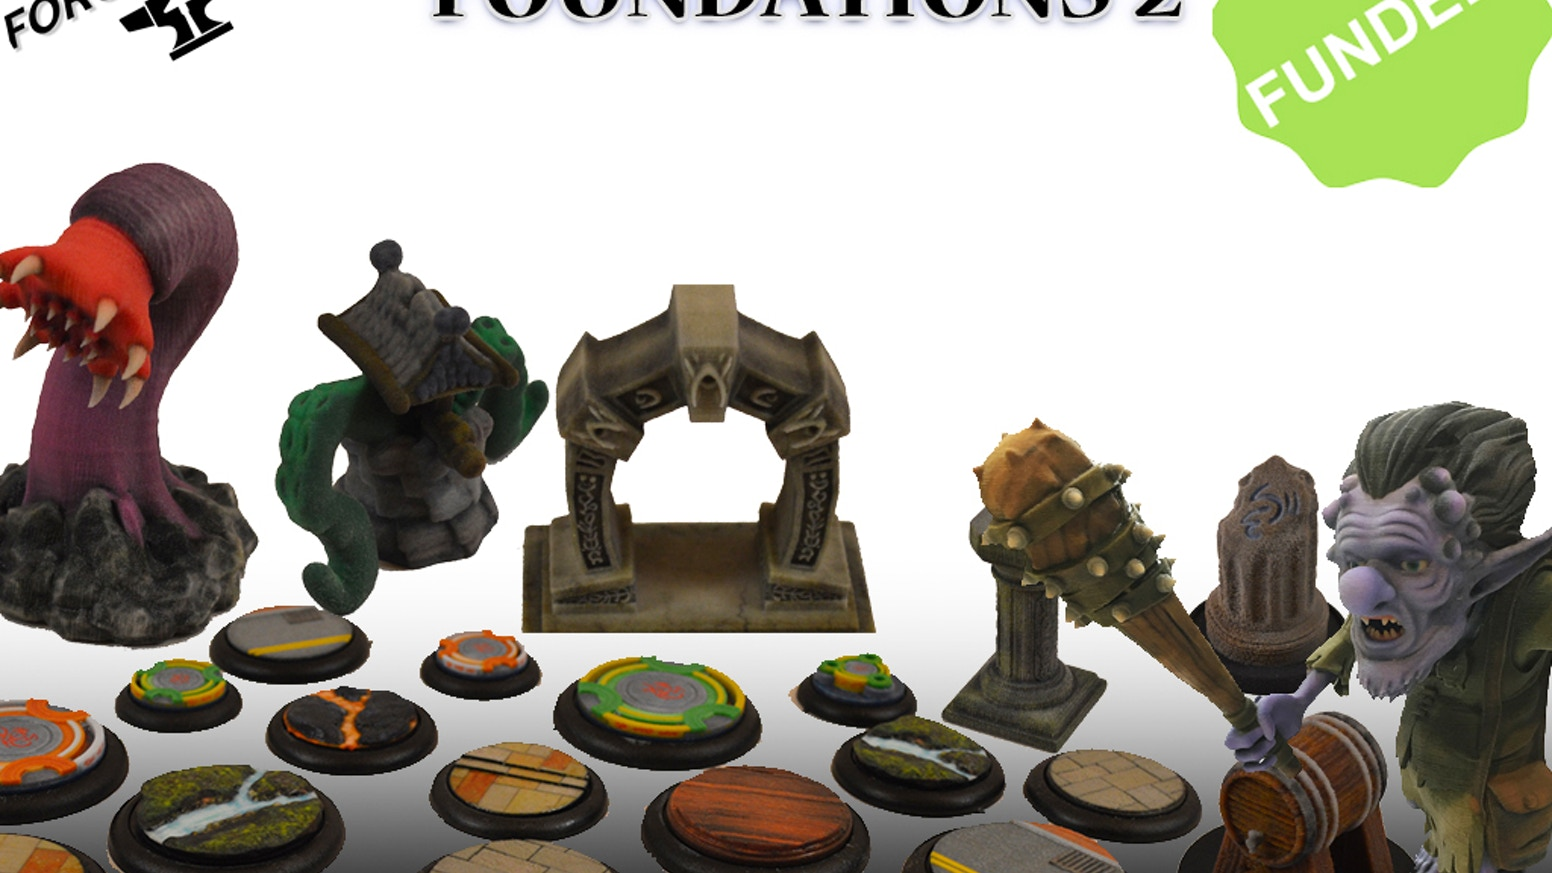 Full color 3D printed table top gaming bases, accessories, battle field markers, creatures, and collectibles.